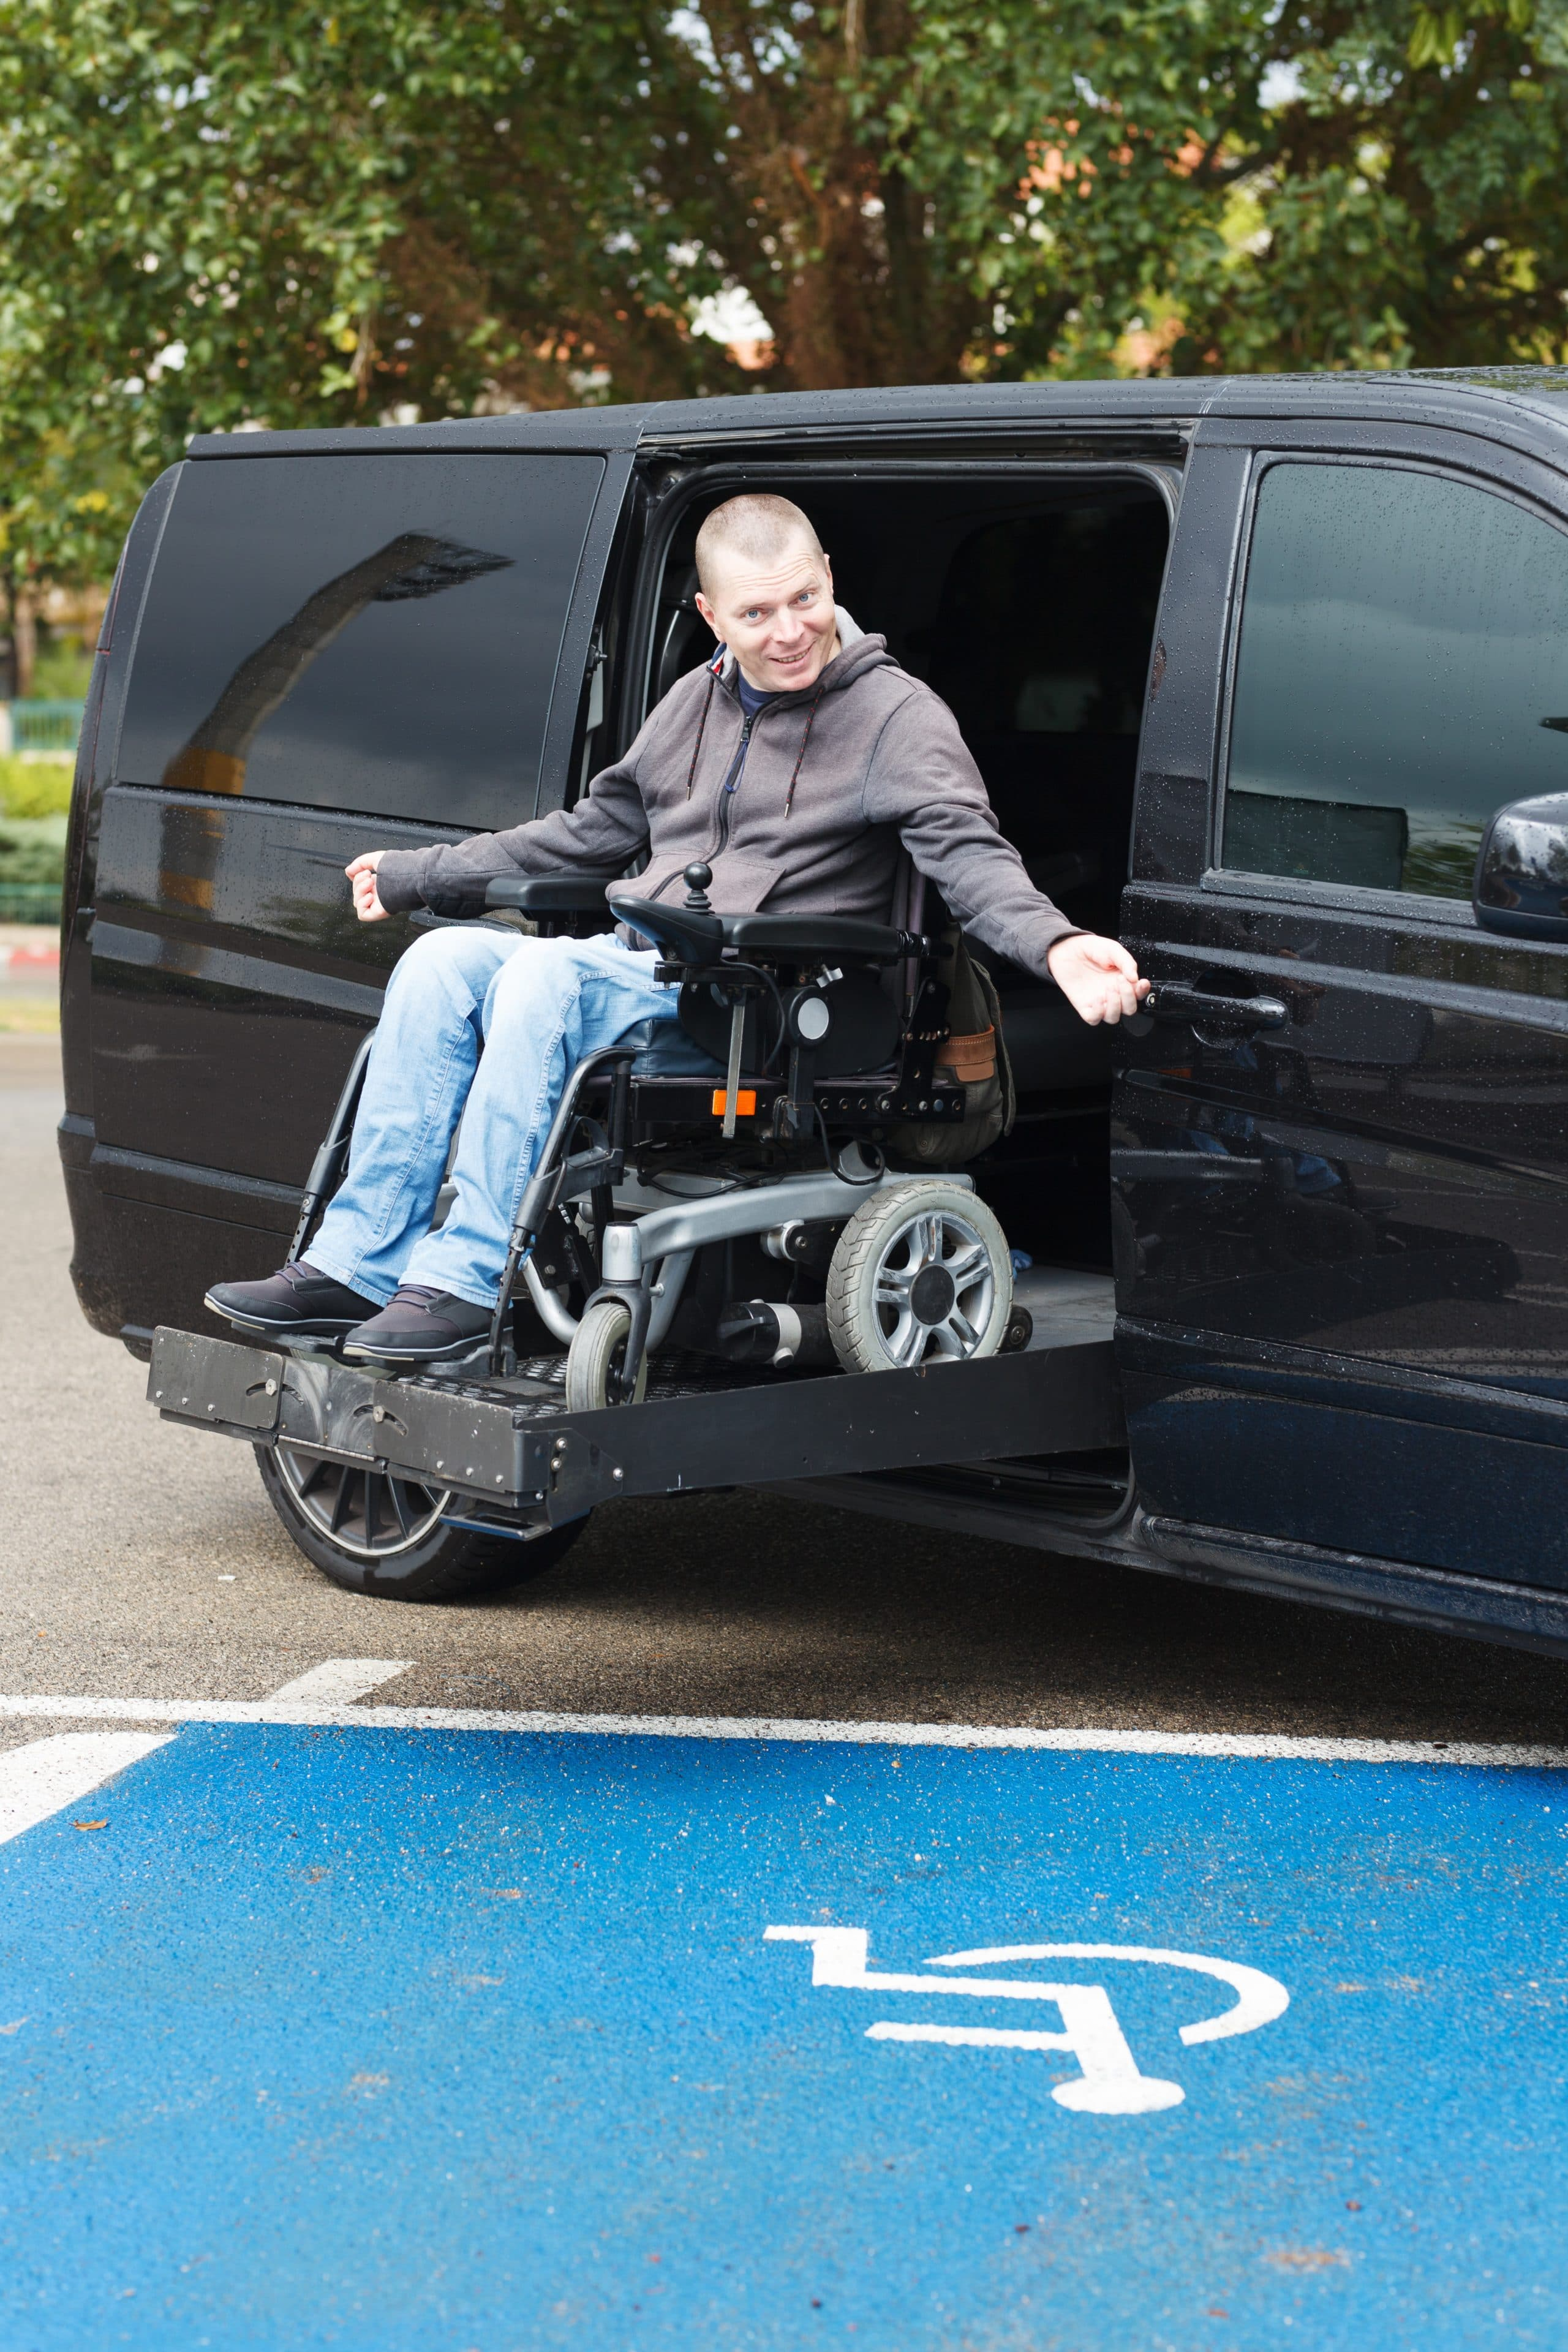 Man in Wheelchair getting out of an Accessible Van